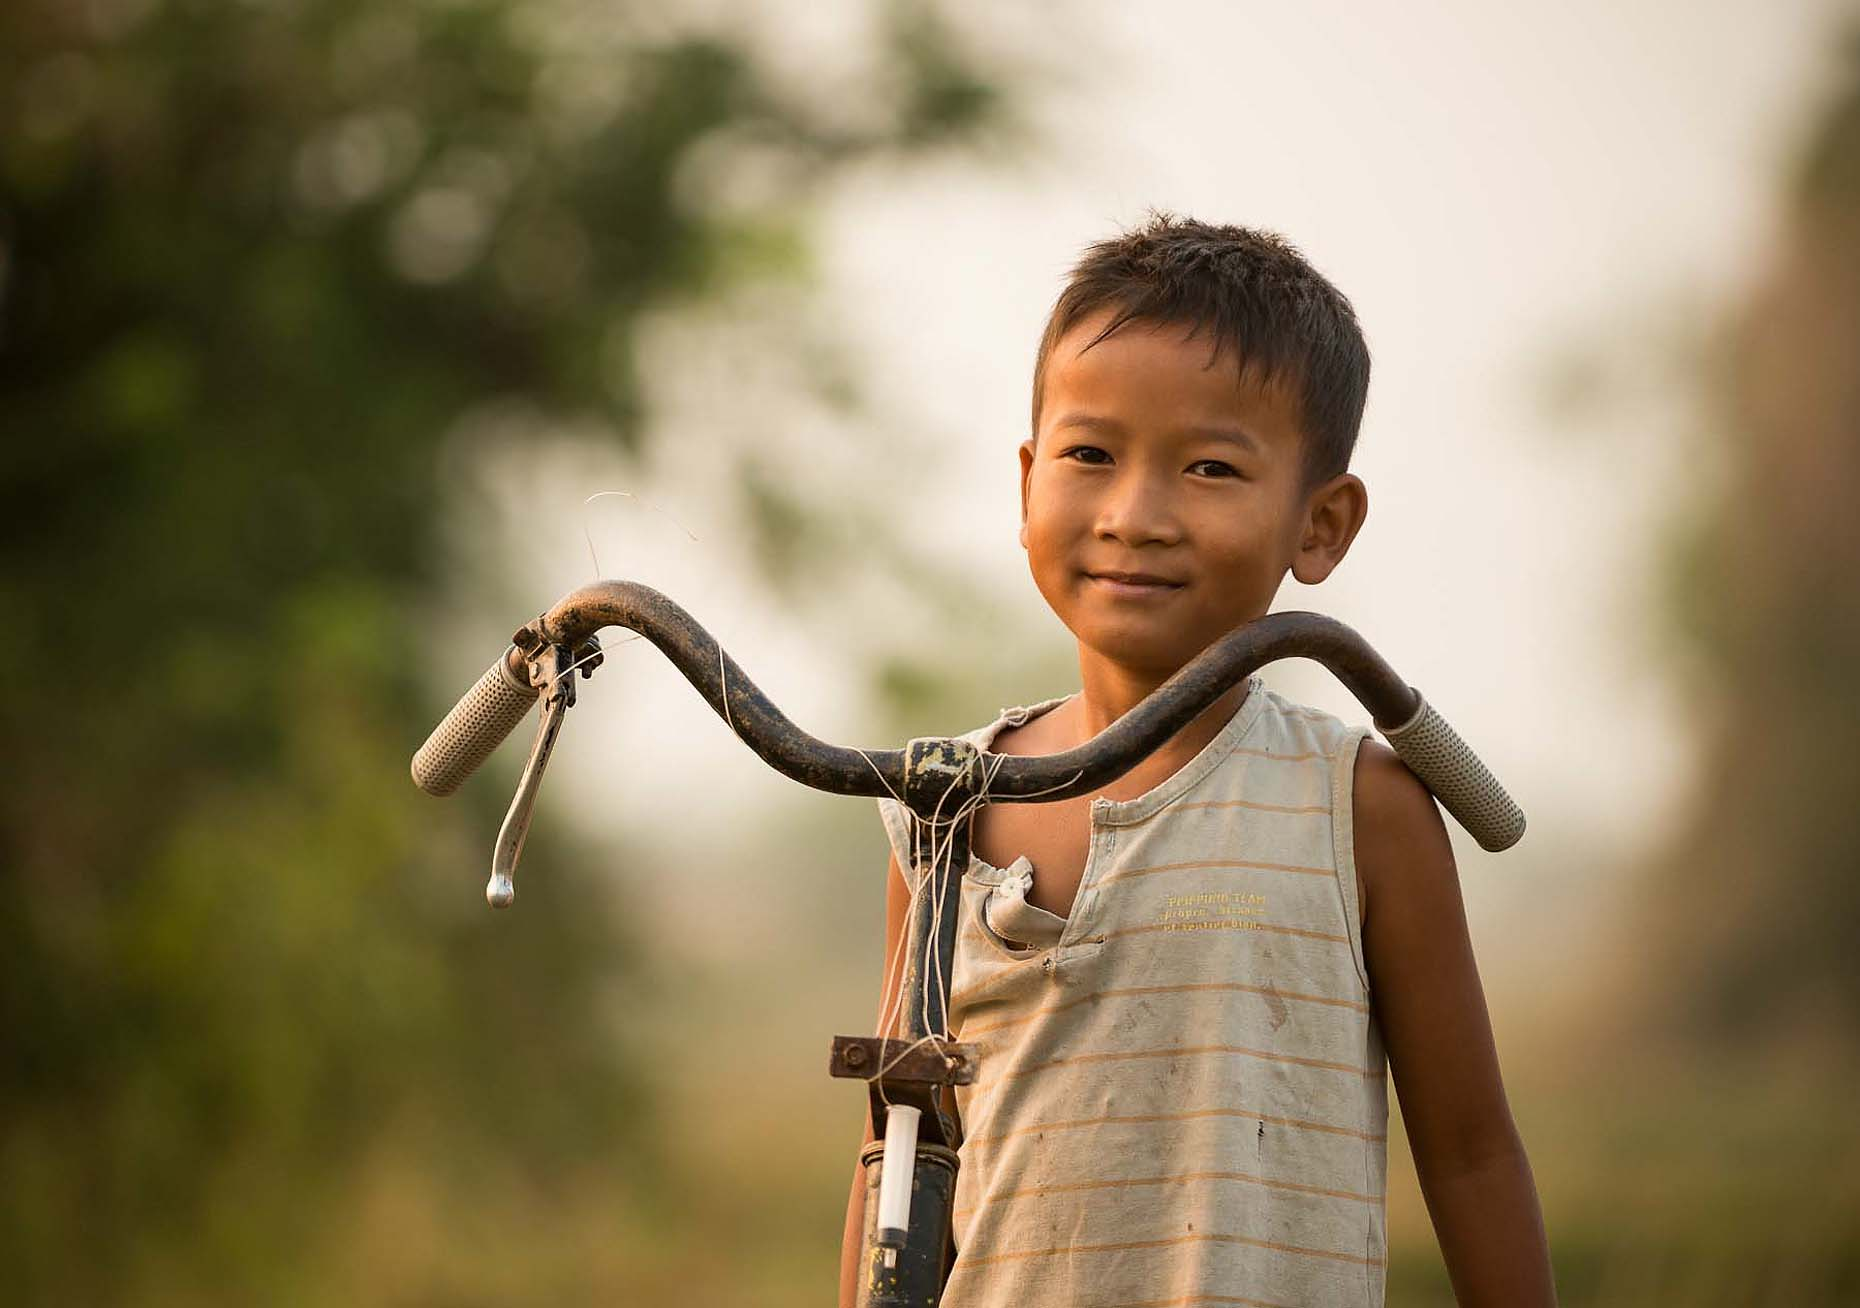 portrait-travel-photographer-kep-cambodia-boy-bike-37